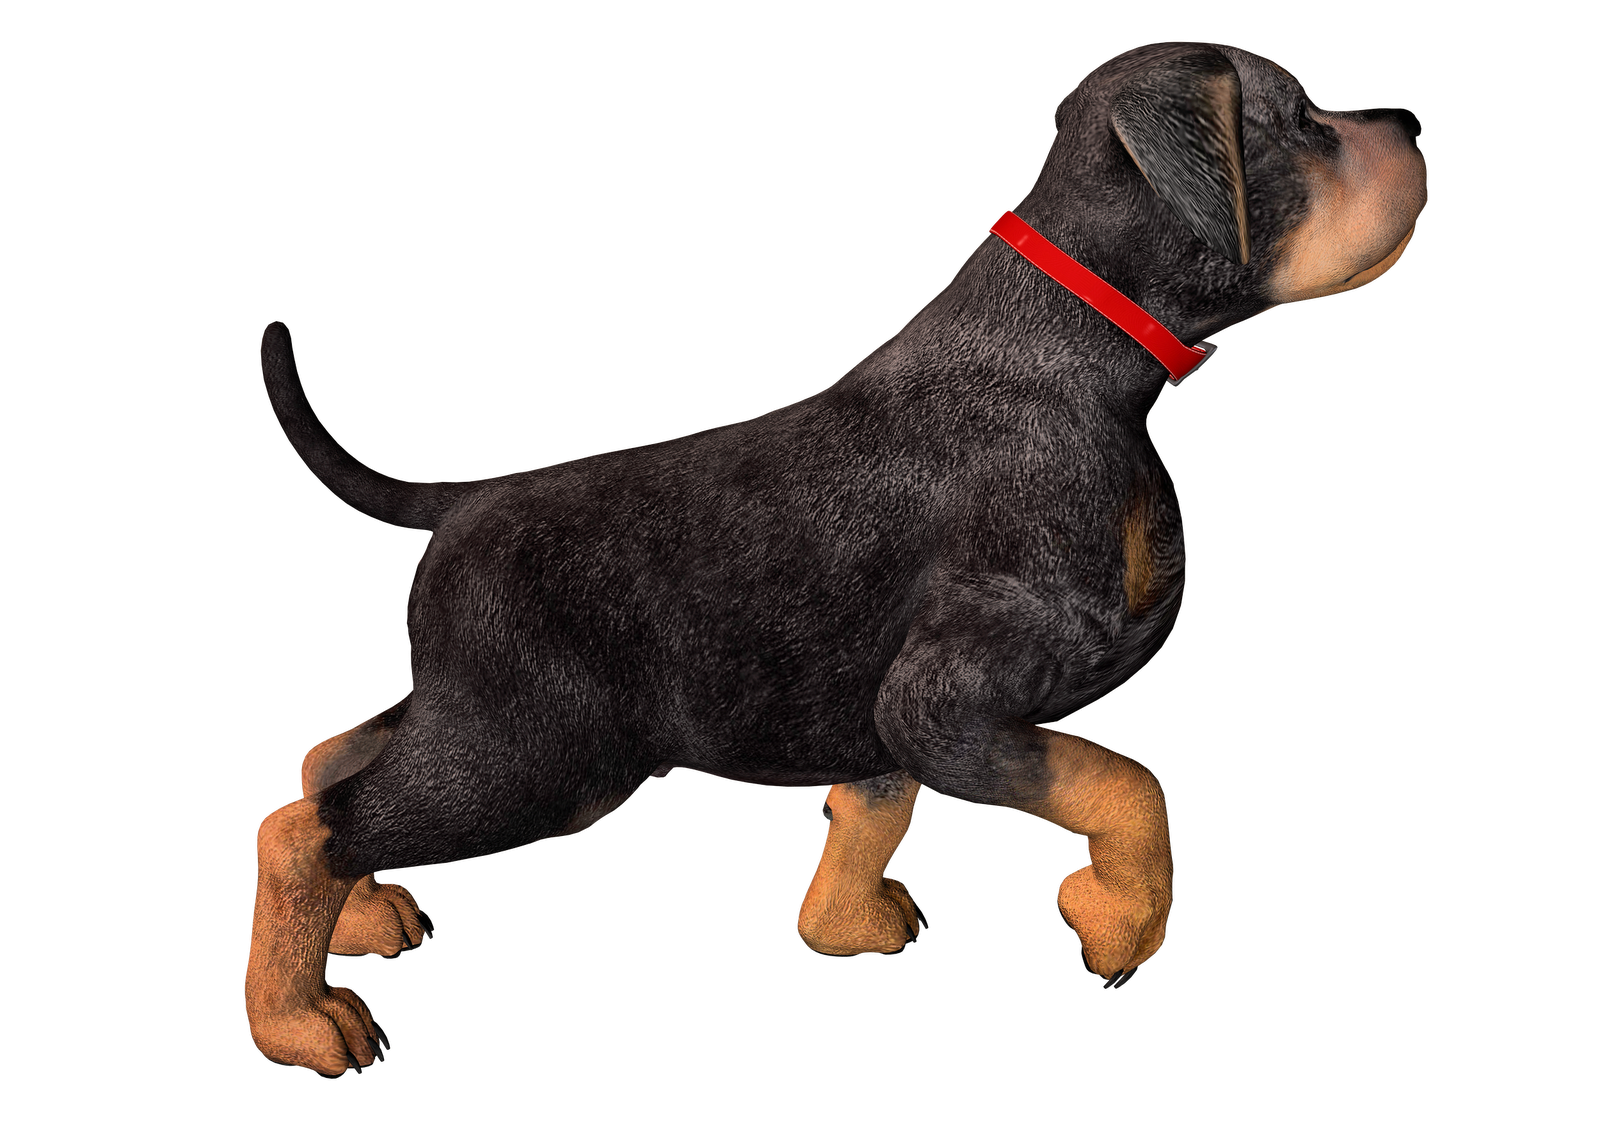 PNG HD Dogs Transparent HD Dogs PNG Images  | PlusPNG